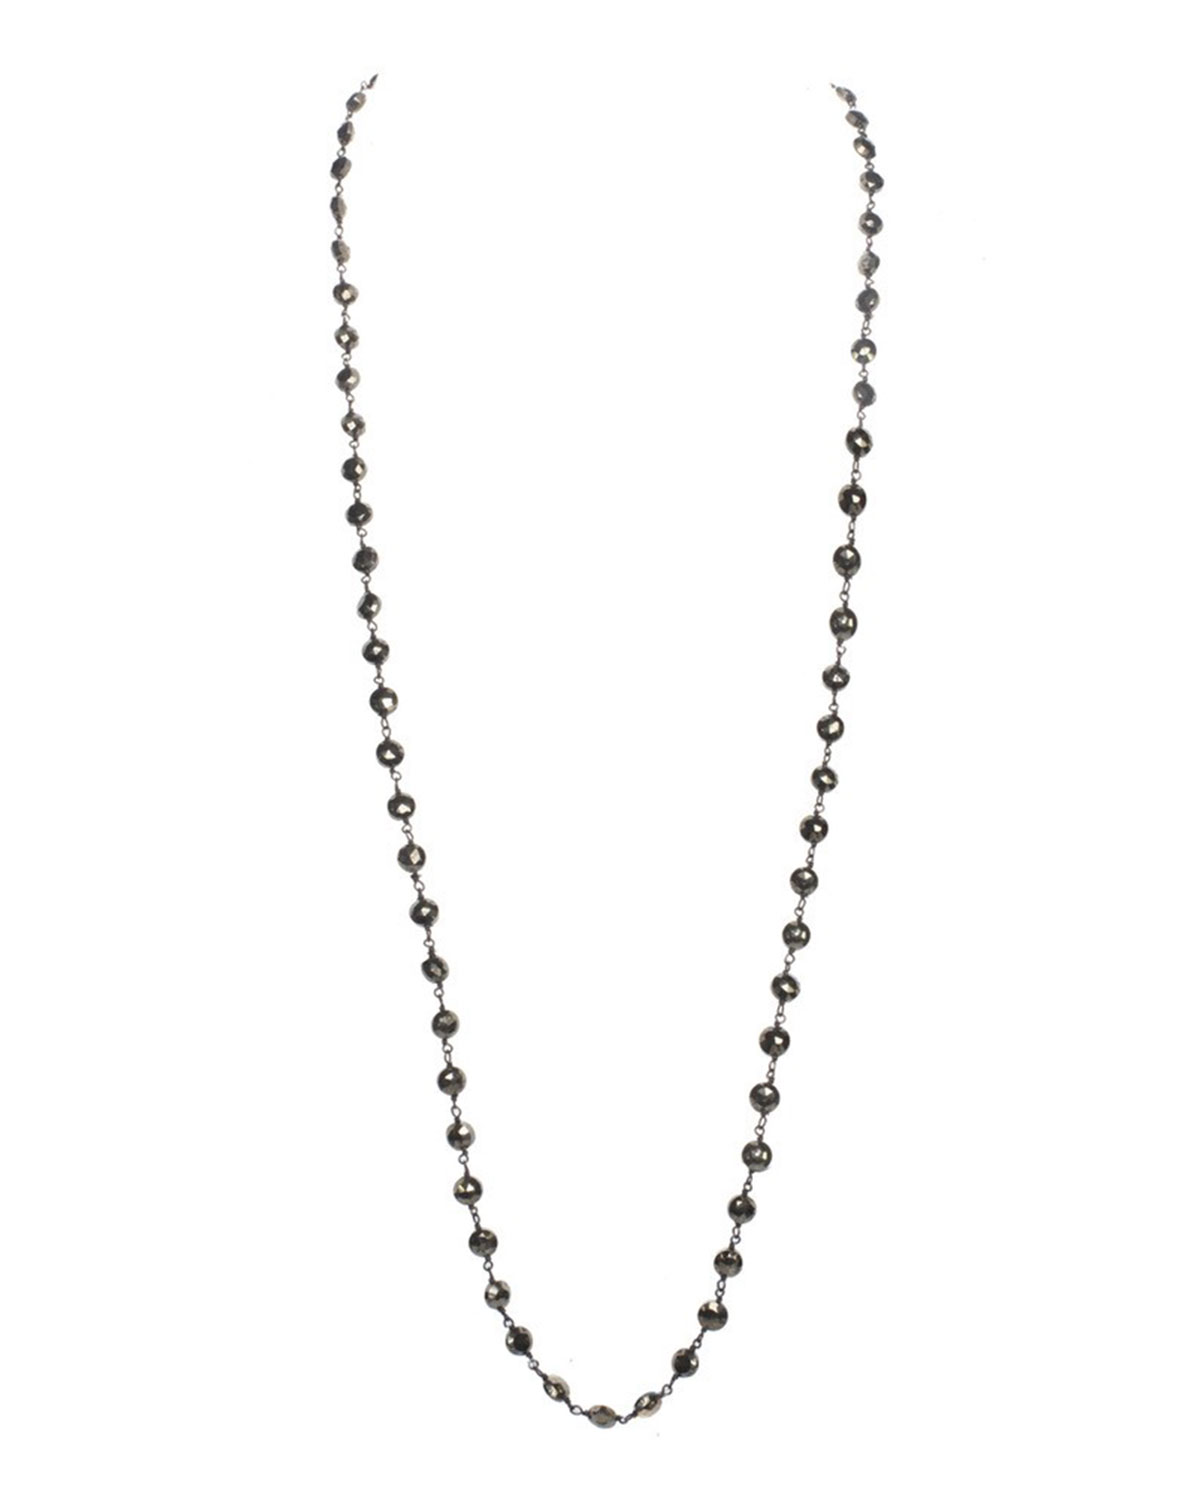 Faceted Pyrite Mask Chain/Necklace